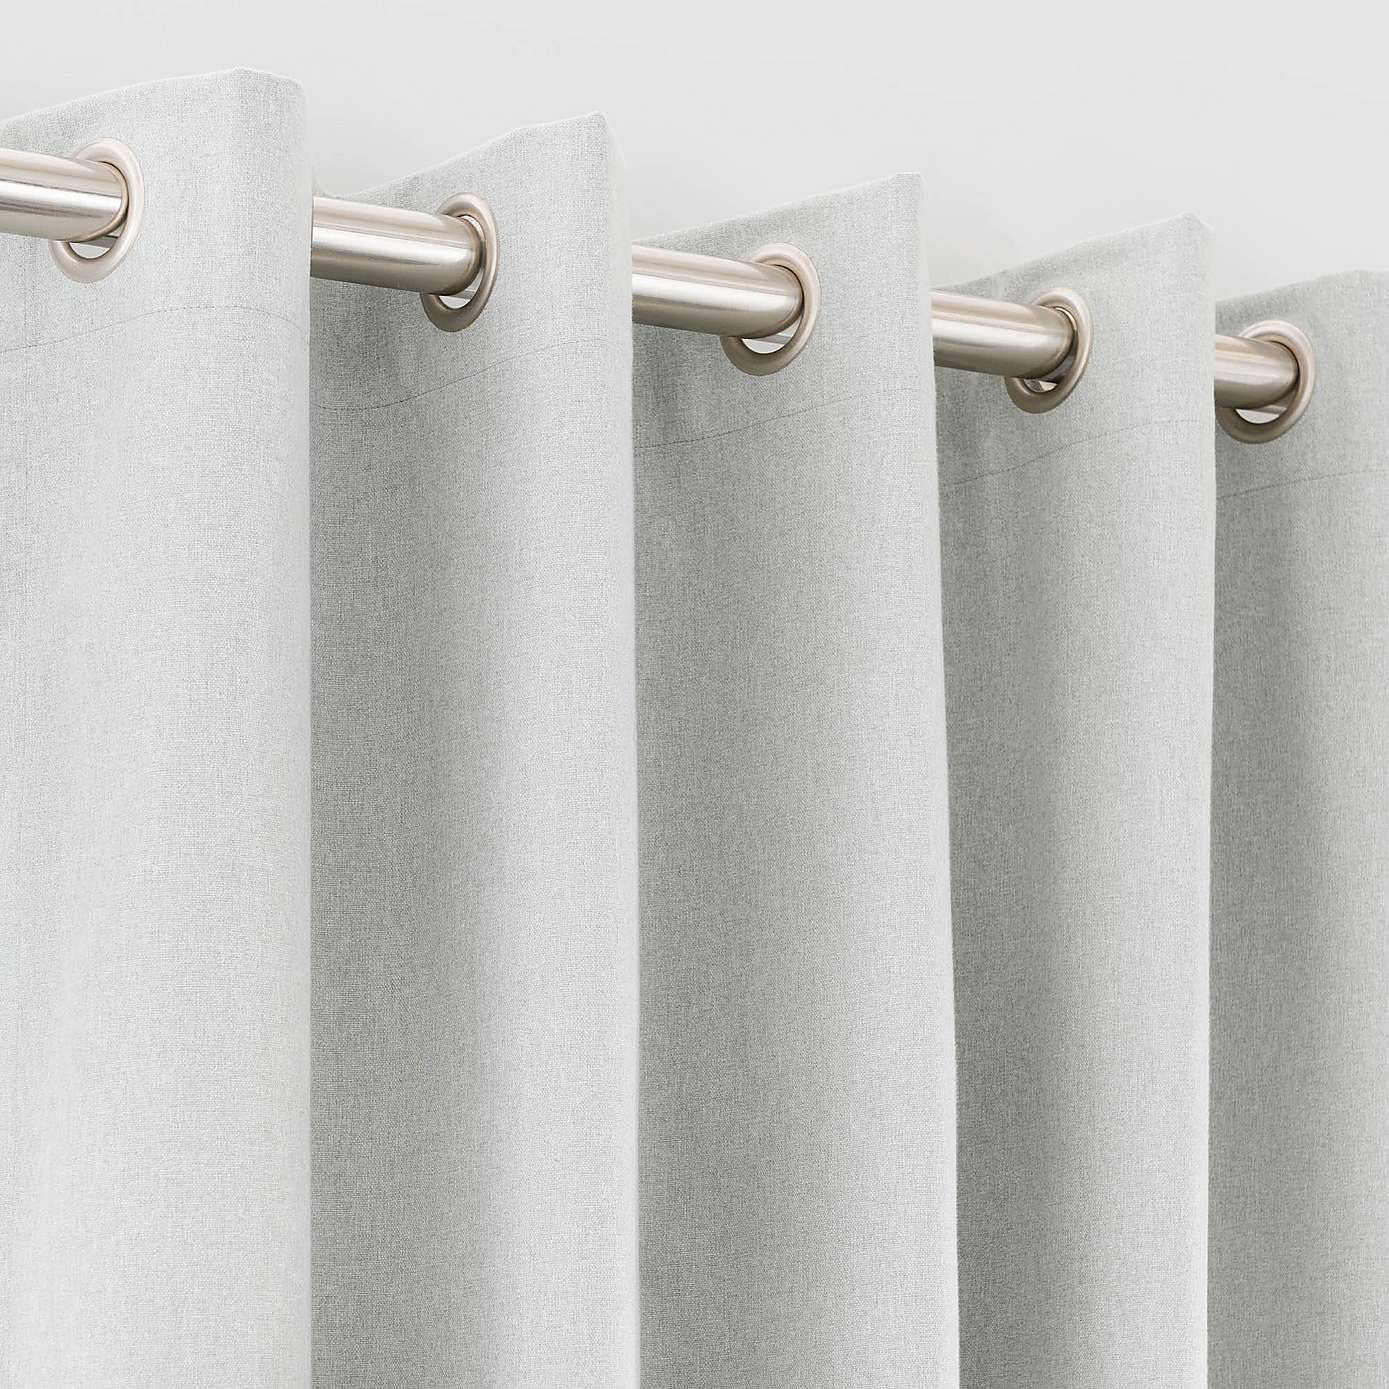 drapes wayfair solid with curtain treatments elrene panel victoria single grommet grey home grommets thermal blackout window velvet pdx fashions reviews